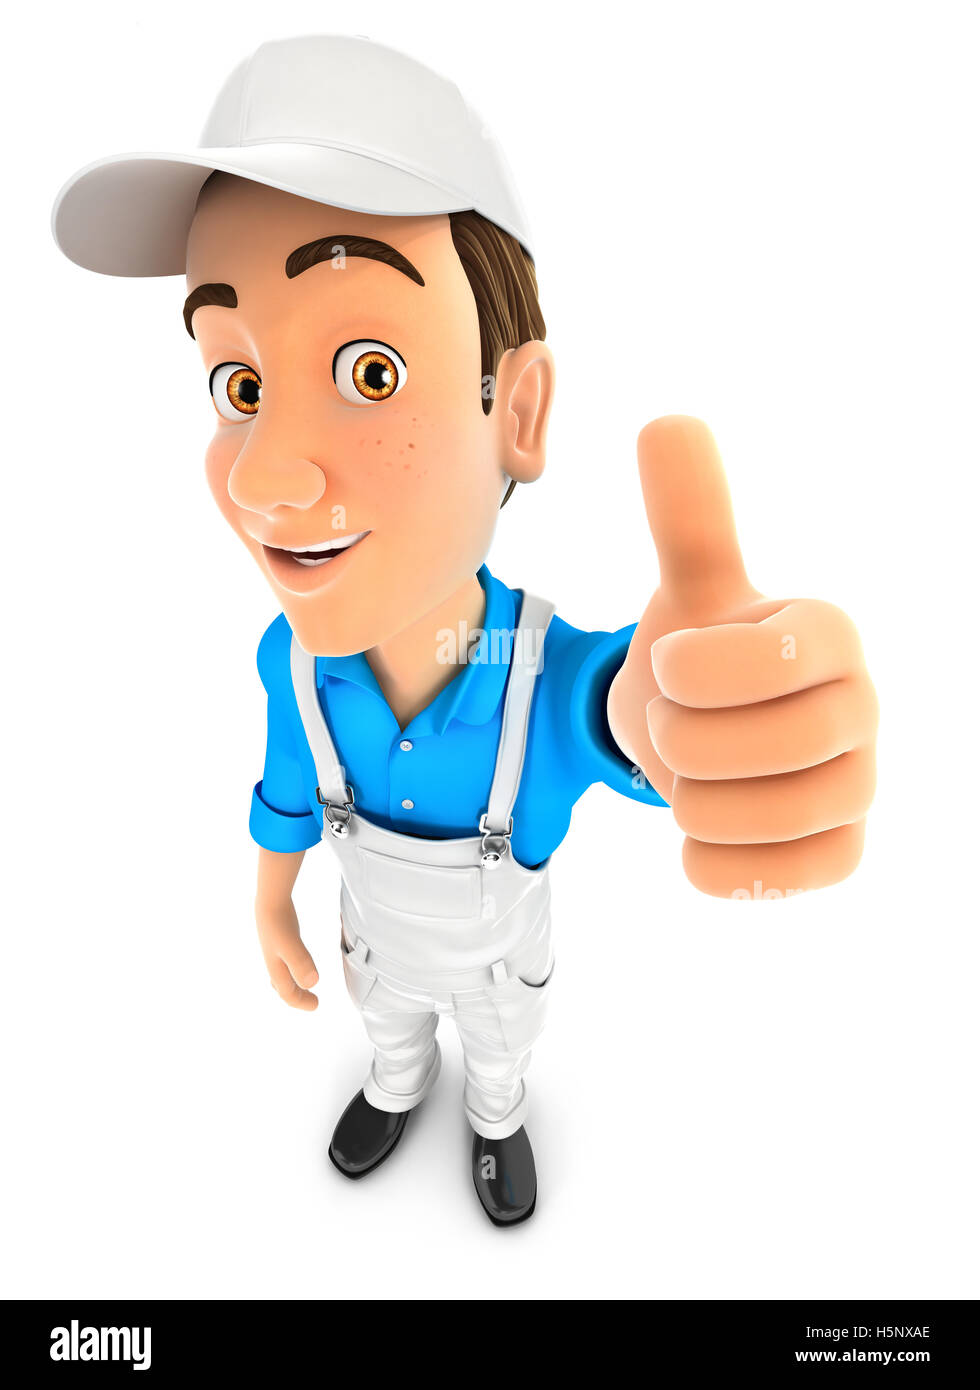 3d painter positive pose with thumb up, illustration with isolated white background Stock Photo